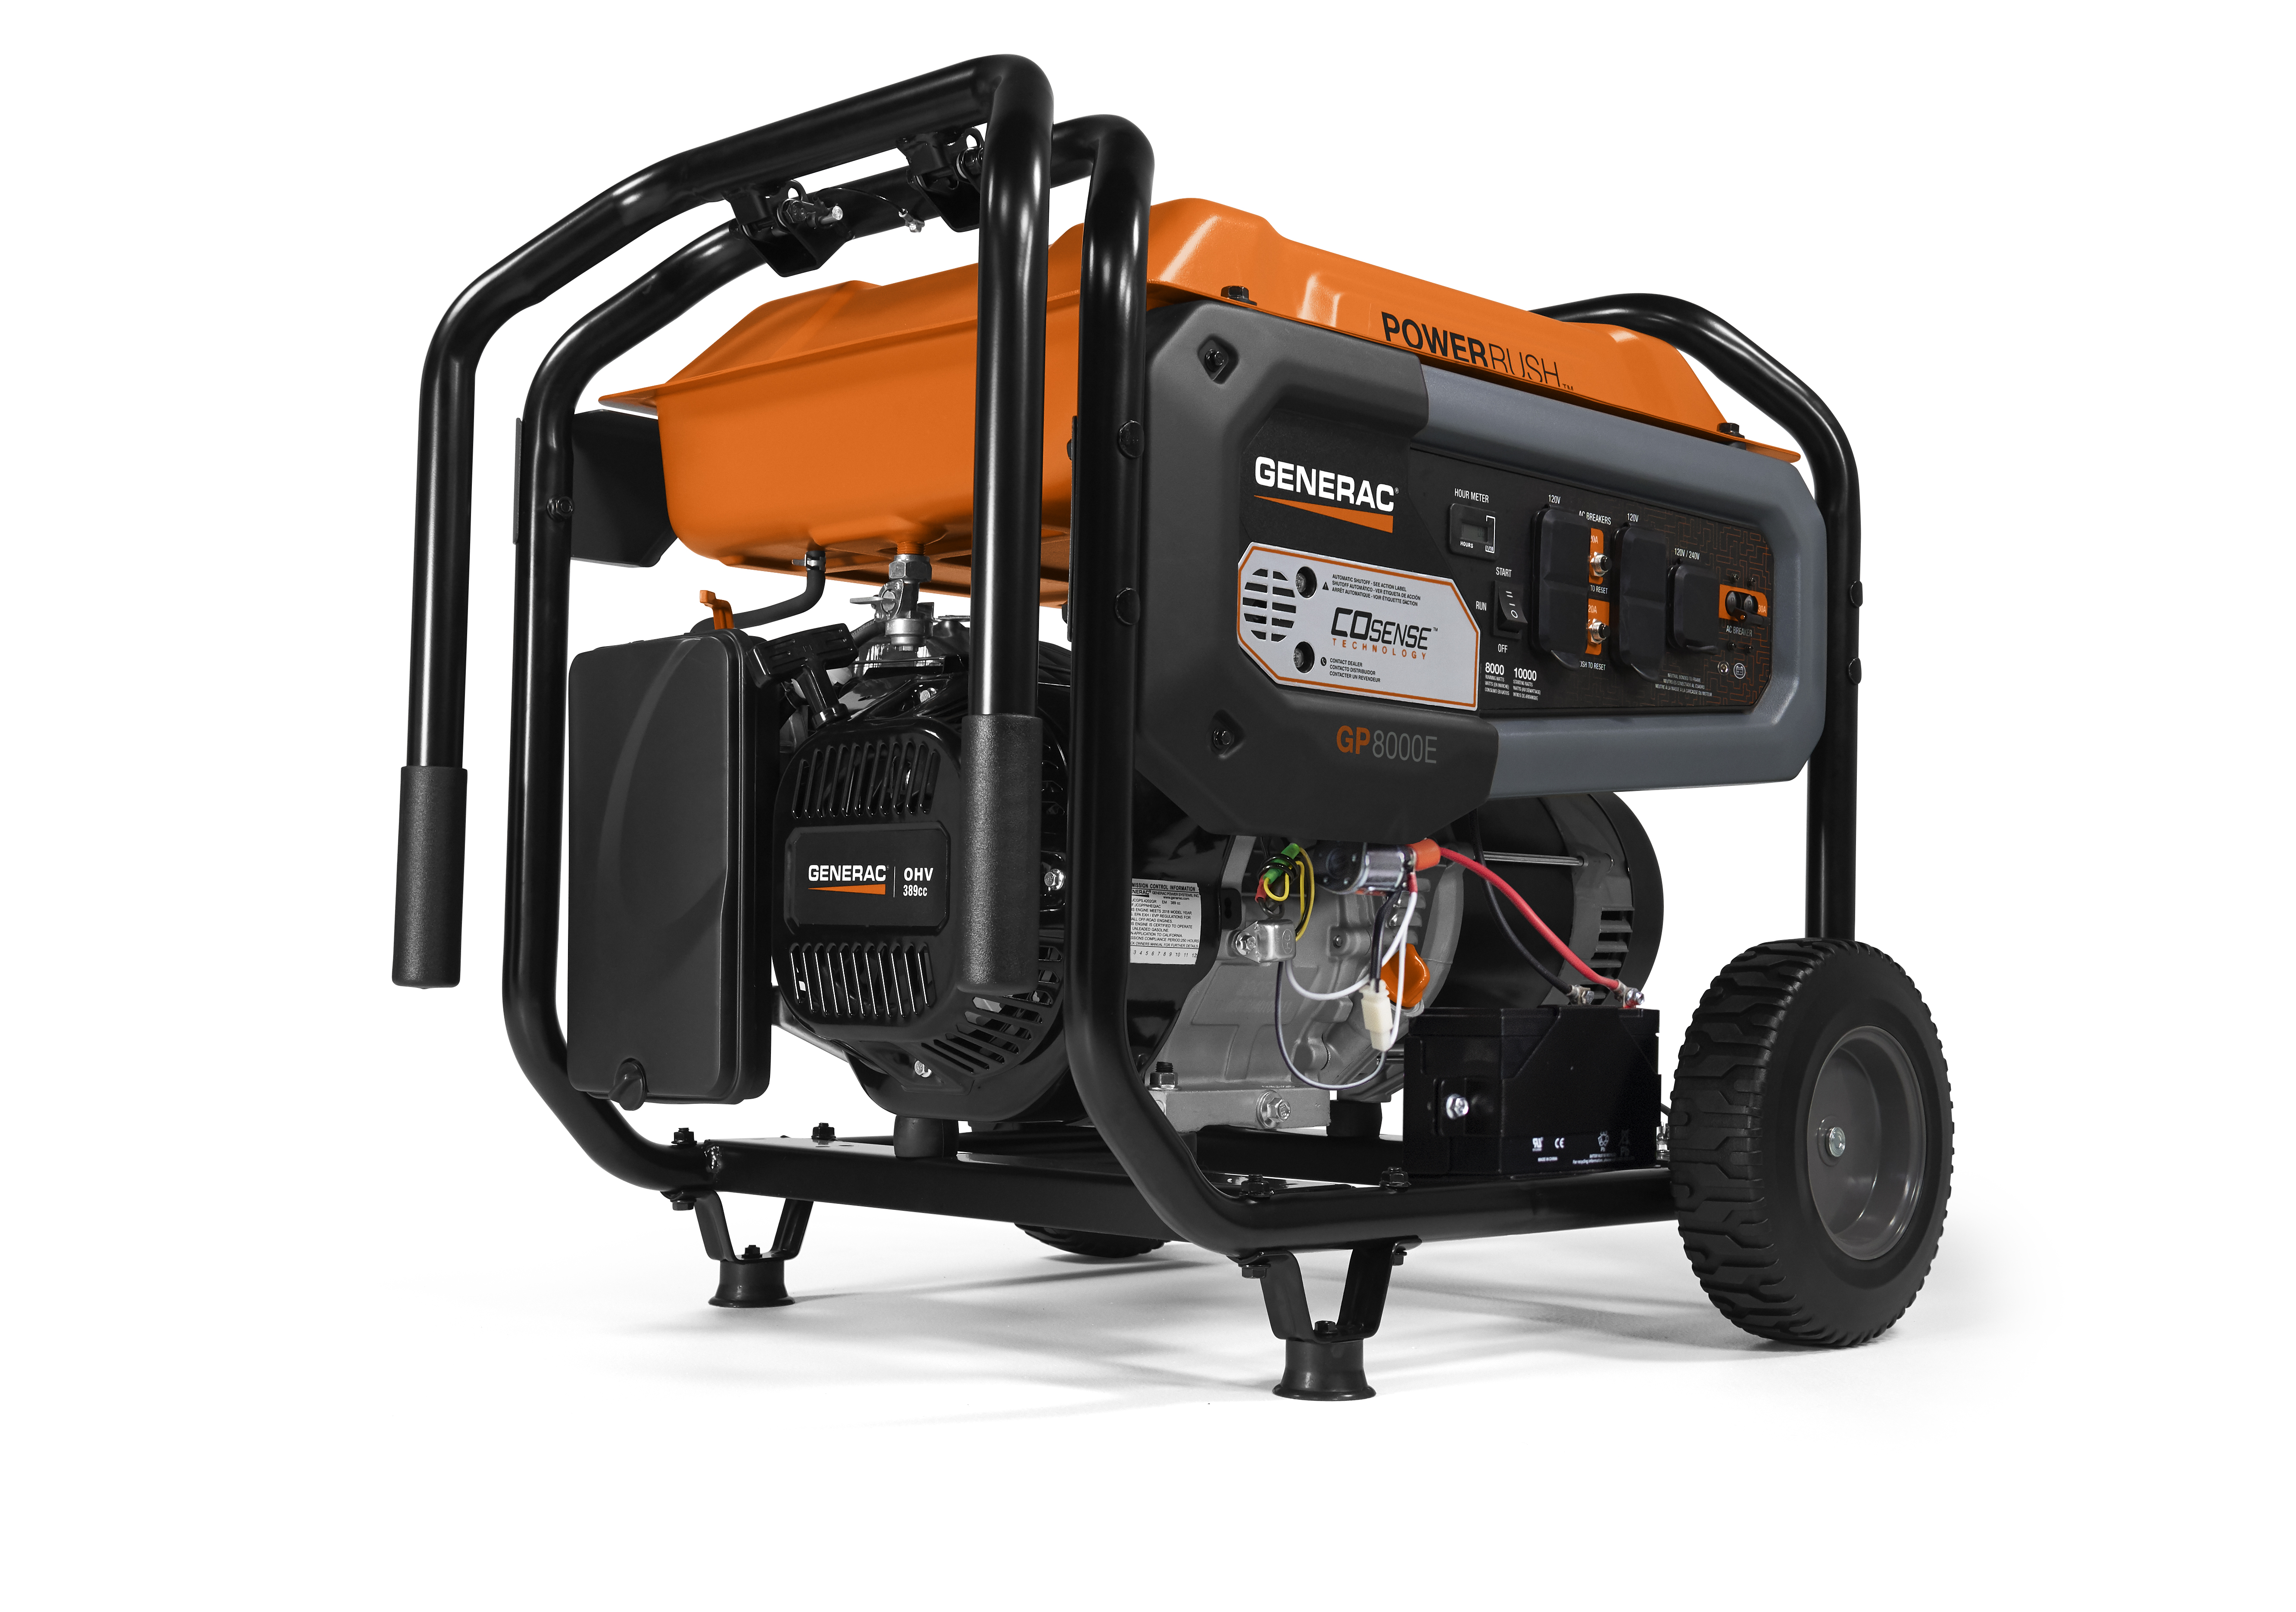 8000 Watt Generac Wiring Schematic Worksheet And Diagram 20kw Power Systems Gp Series Portable Generator With Rh Com Manuals Reliance Transfer Switch